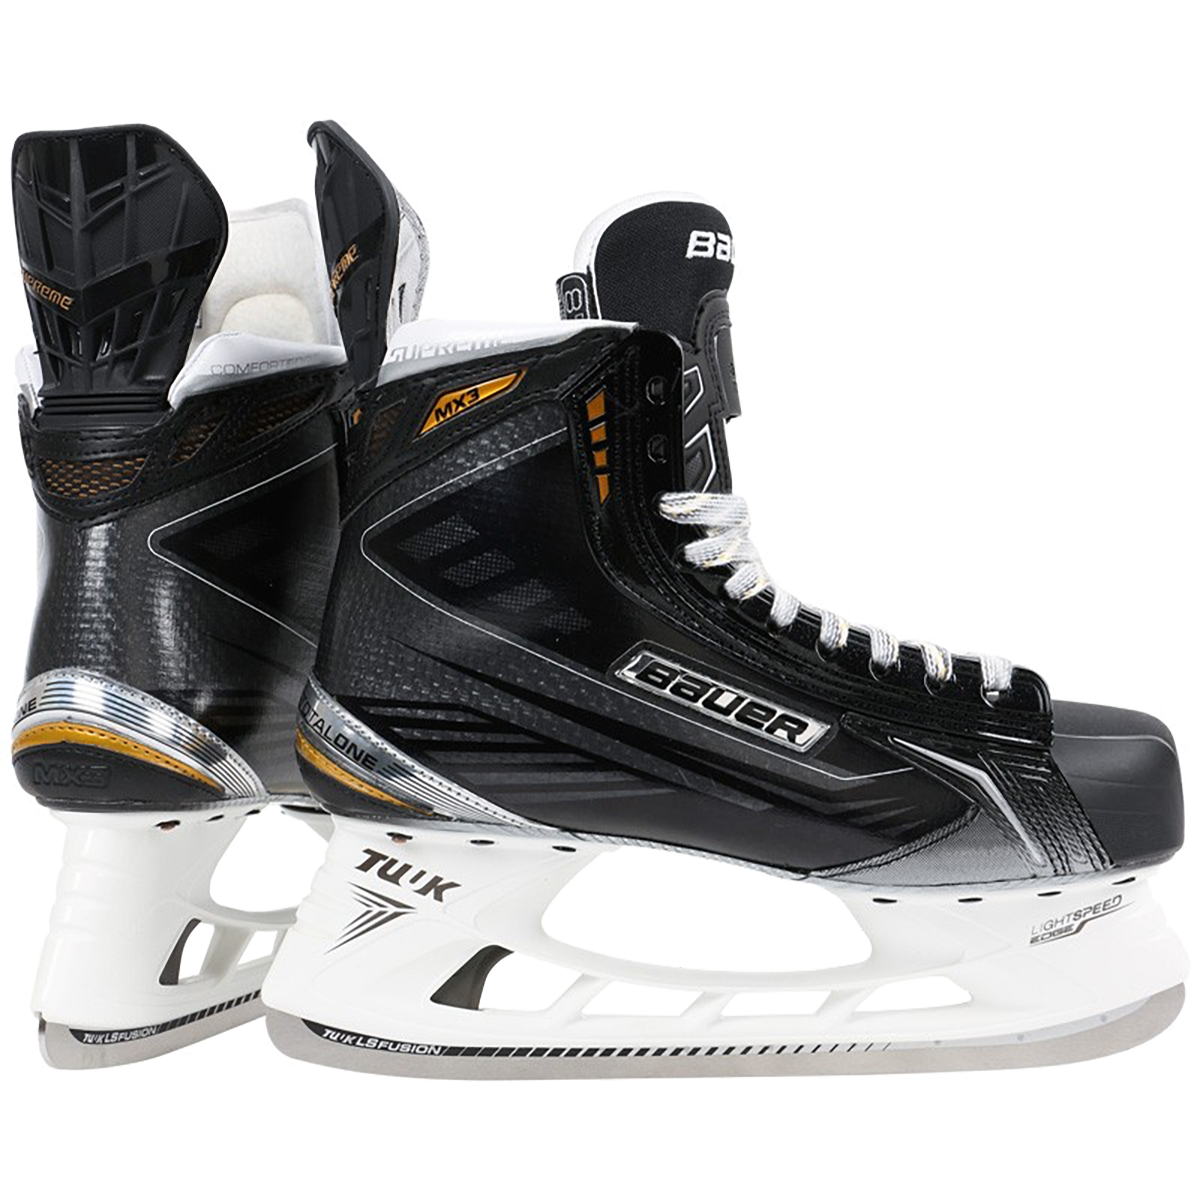 Ice Skates PNG Image Hockey equipment, Ice skating, Skate